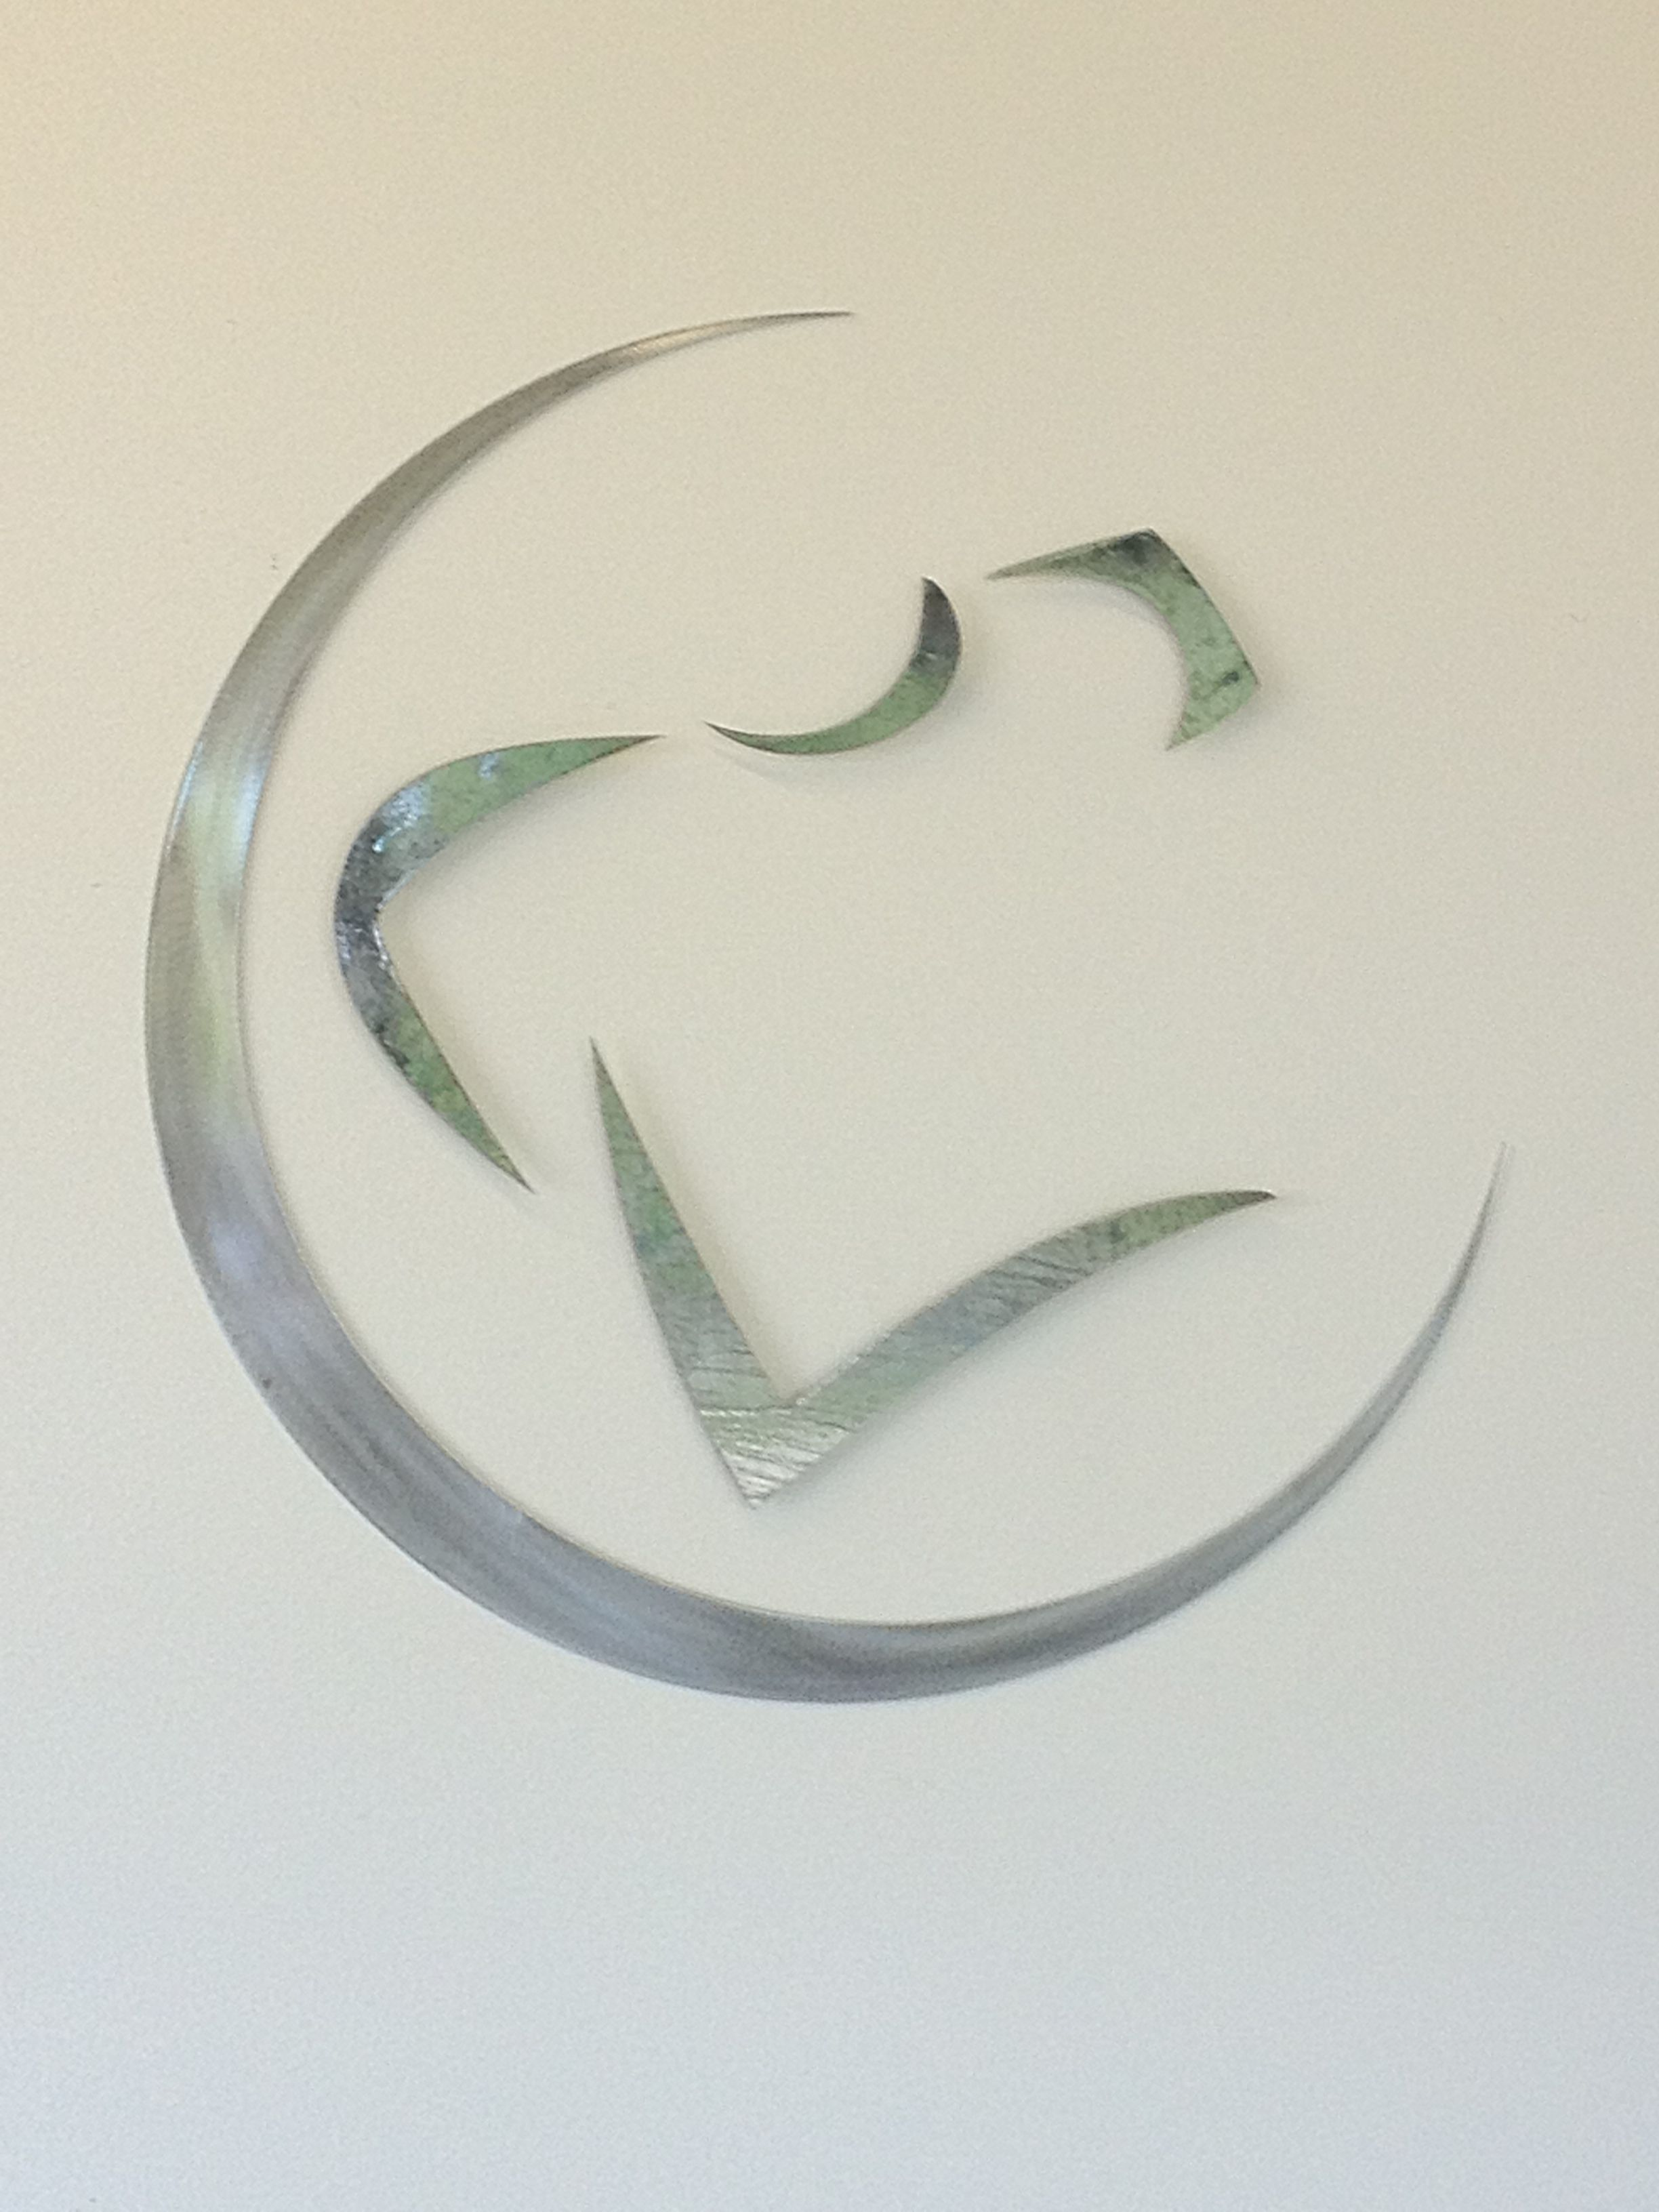 Logo done in scrap metal, loved how this turned out